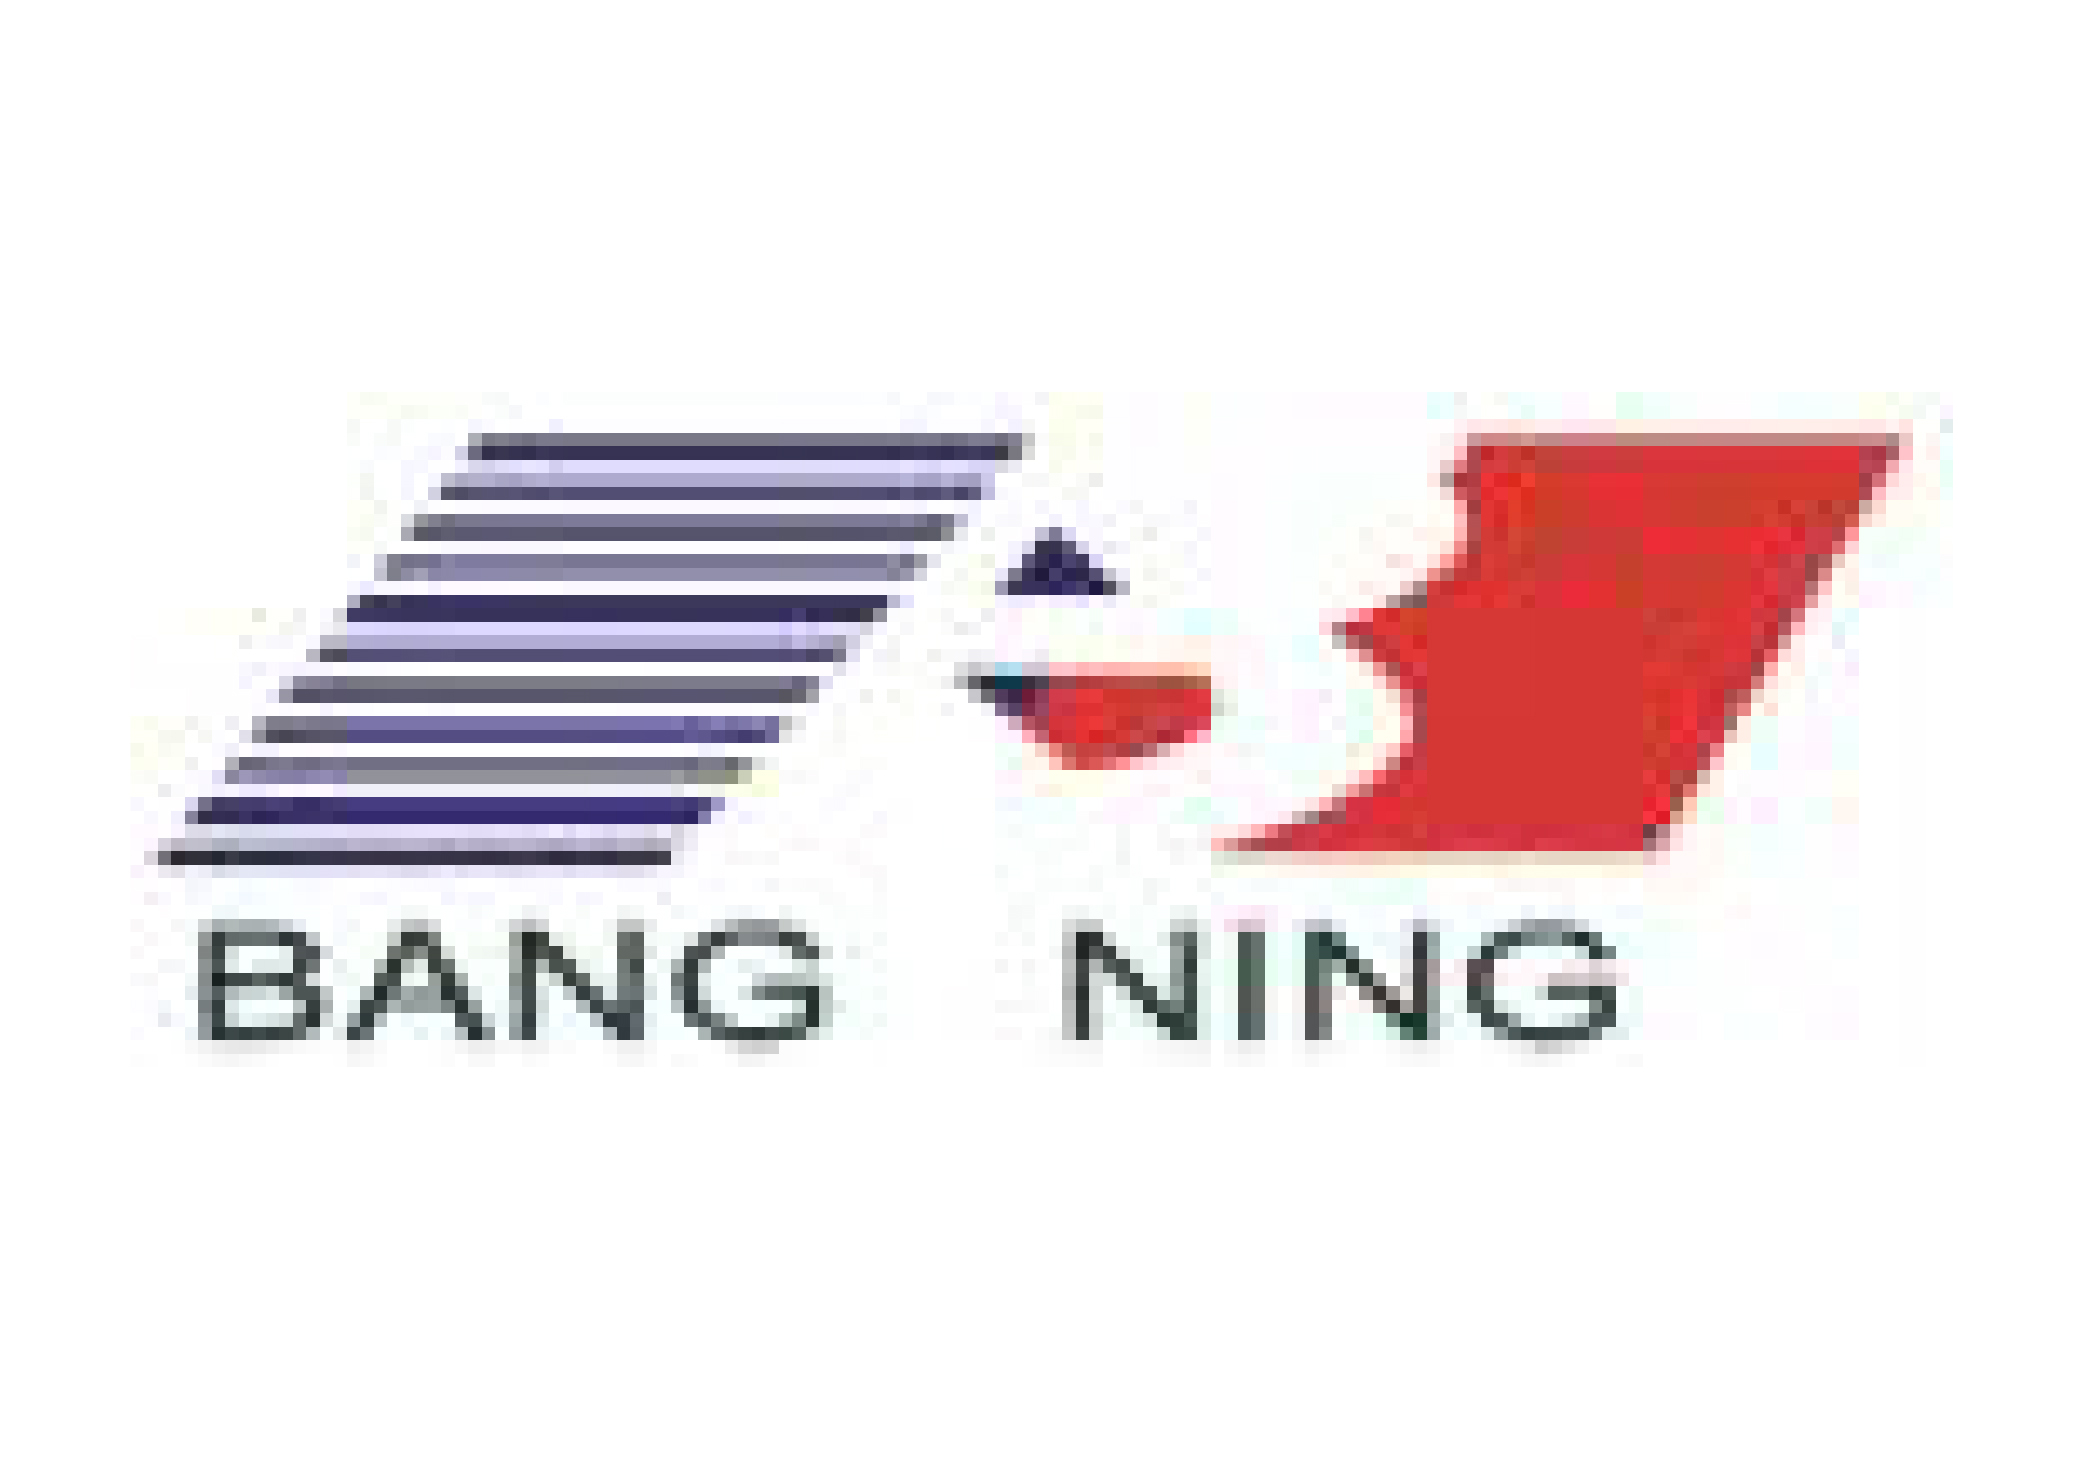 Jiangsu Bangning Science & Technology Co., Ltd